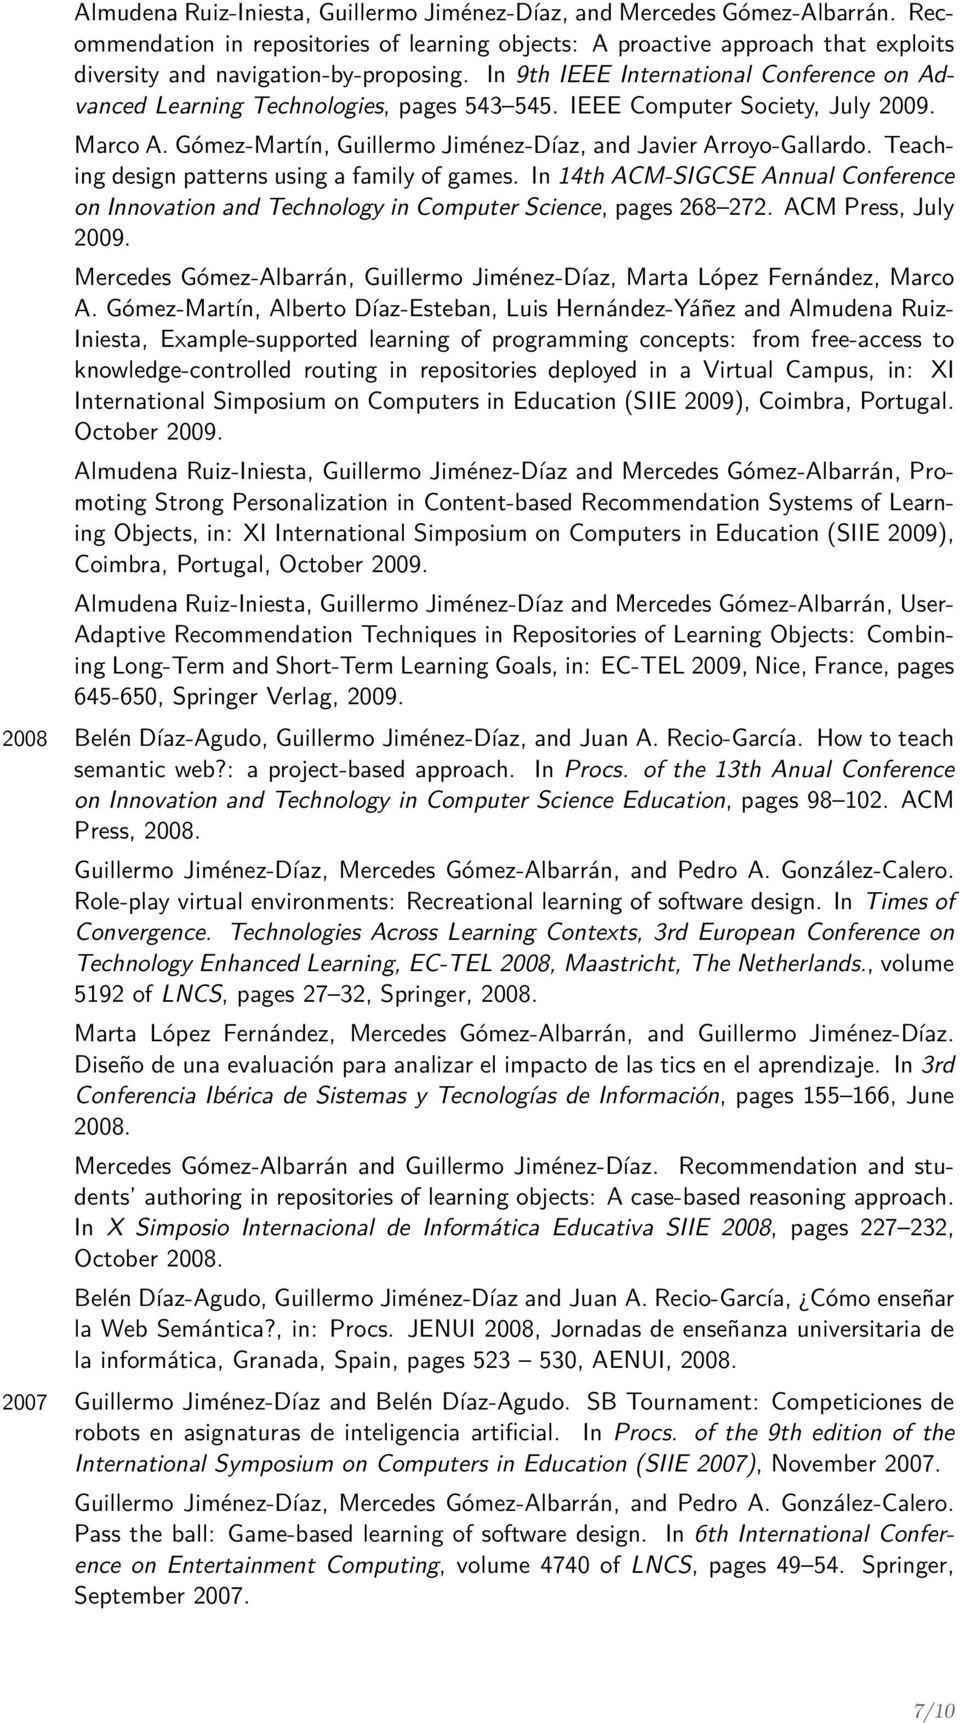 In 9th IEEE International Conference on Advanced Learning Technologies, pages 543 545. IEEE Computer Society, July 2009. Marco A. Gómez-Martín, Guillermo Jiménez-Díaz, and Javier Arroyo-Gallardo.